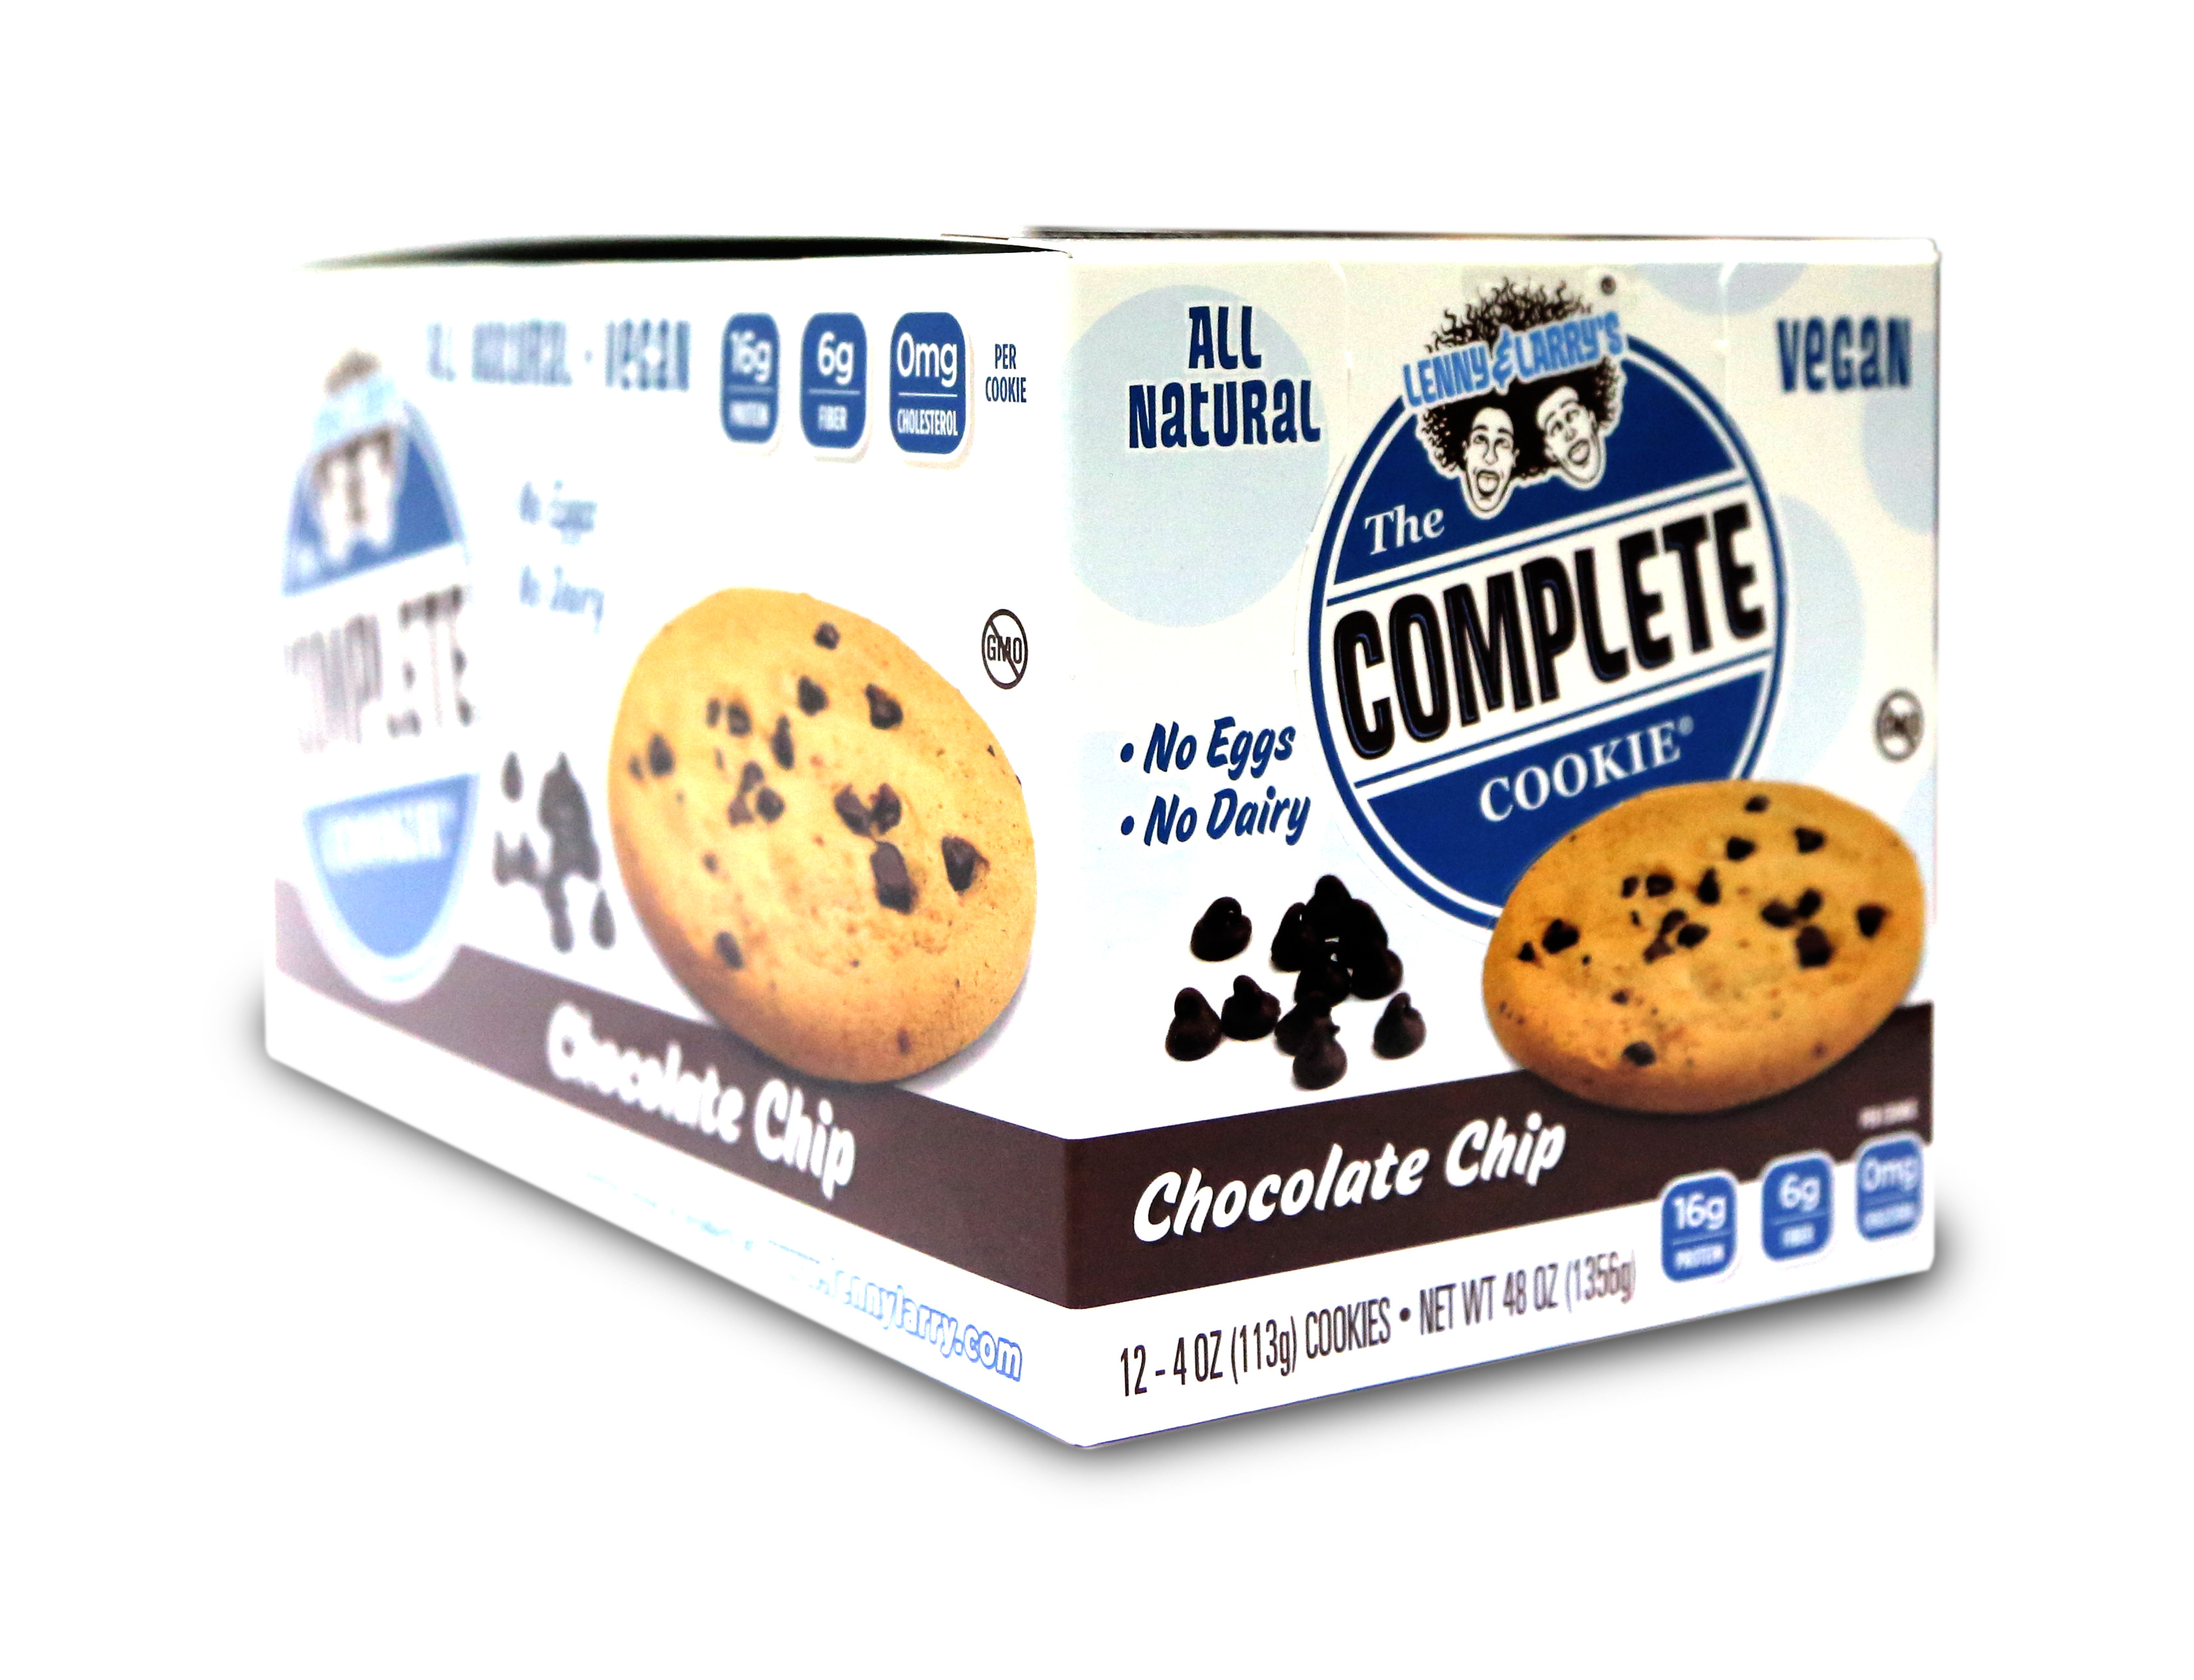 chocchip-cookie-box.jpg